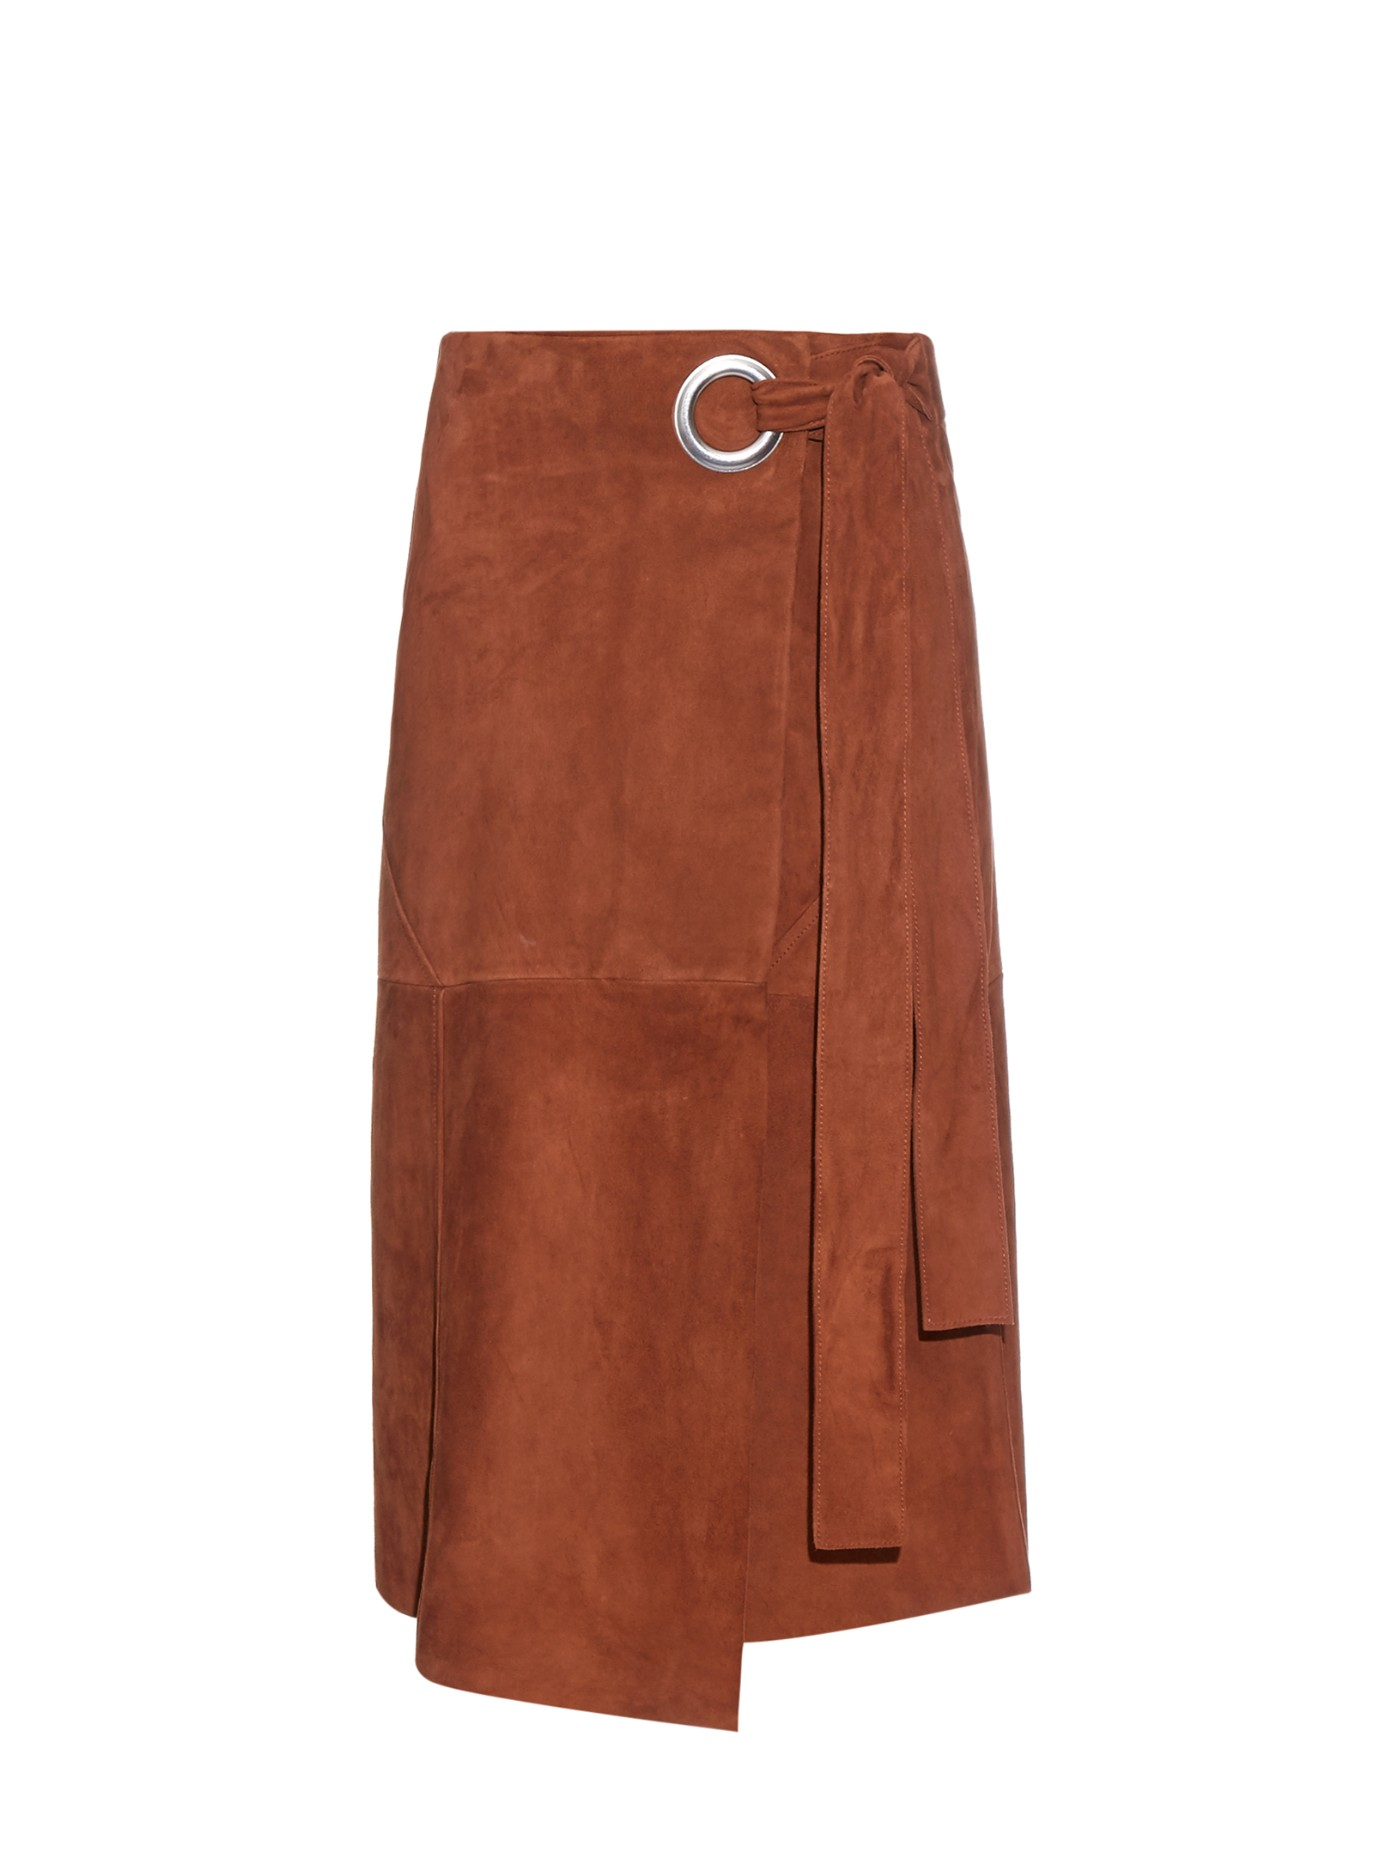 Suede Skirts Fall Fashion Trend 2017 | Become Chic